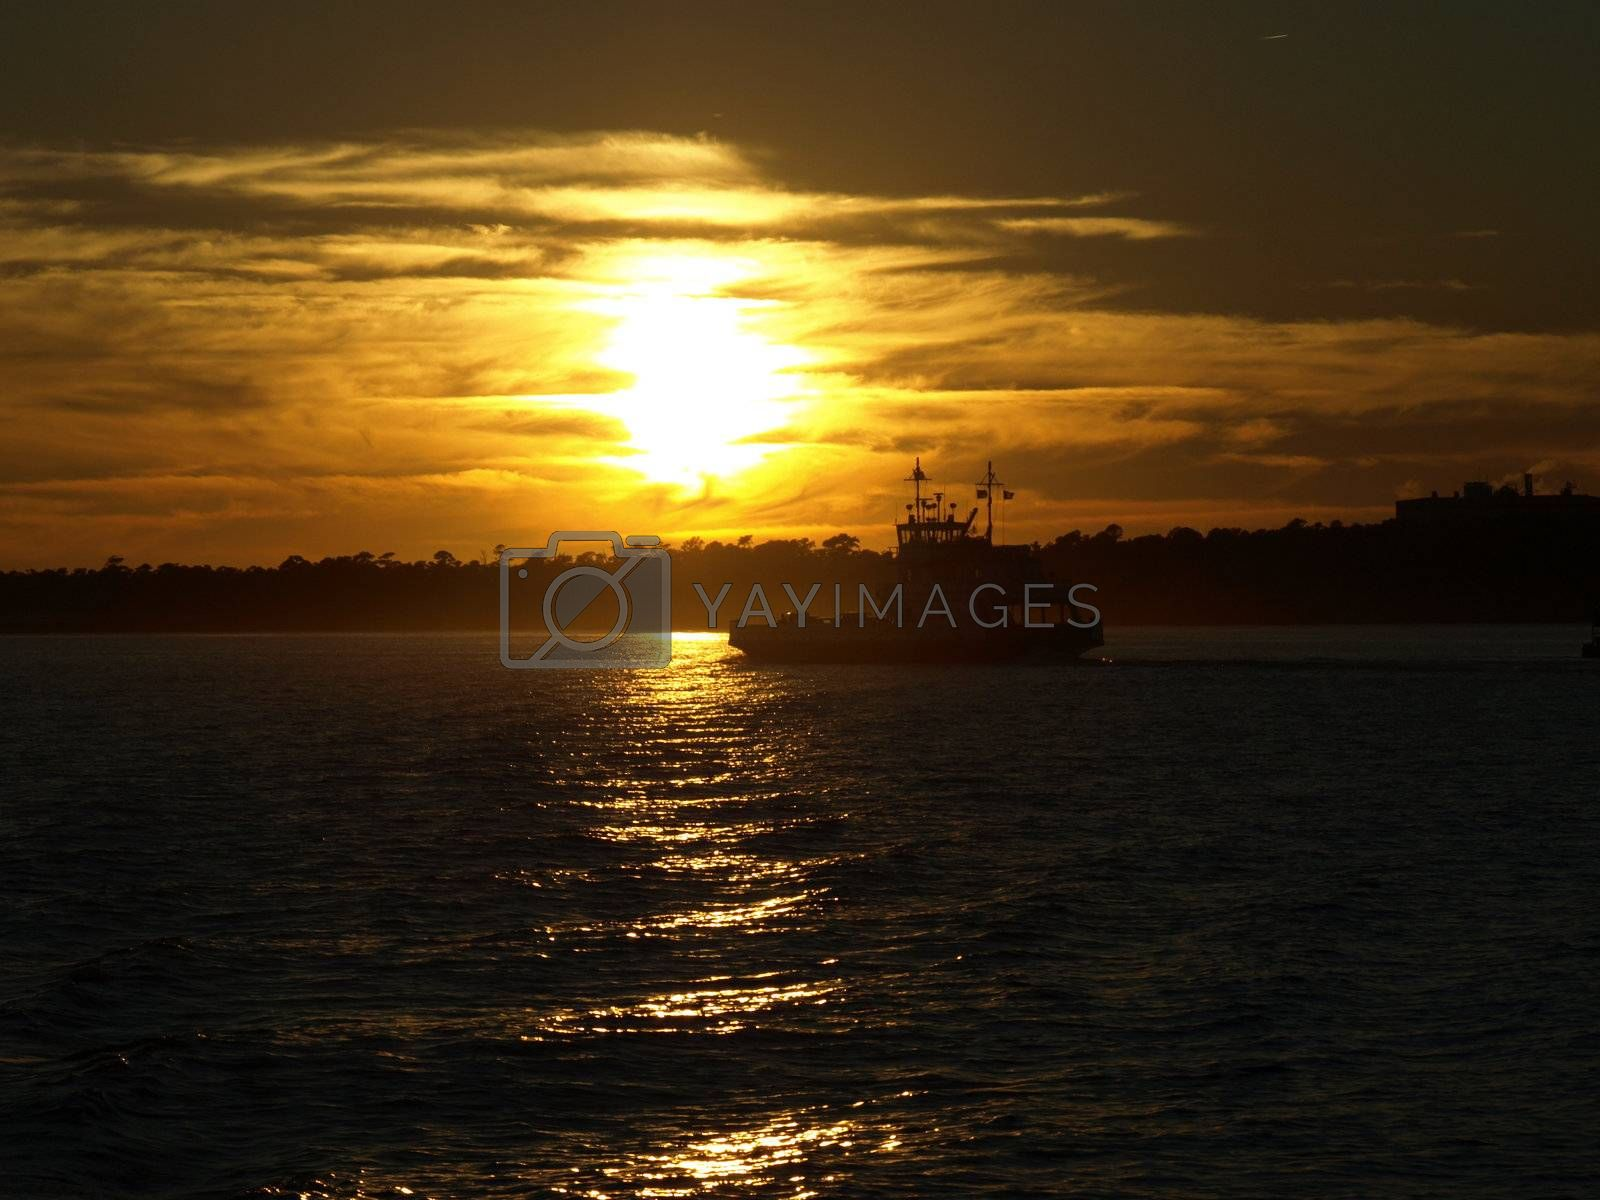 A ferry boat crosses the water against the setting sun